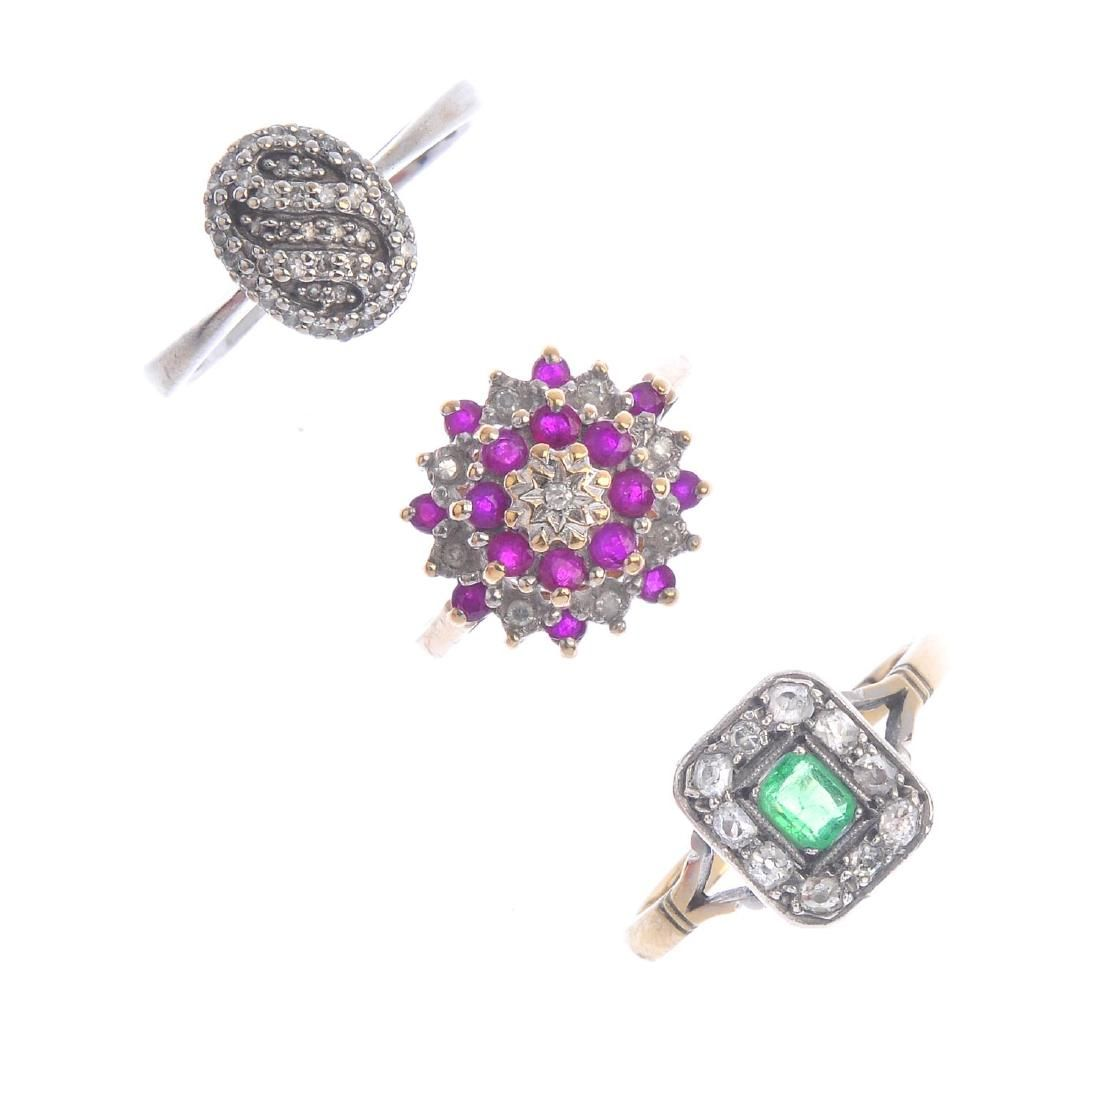 Four diamond and gem-set cluster rings. To include a